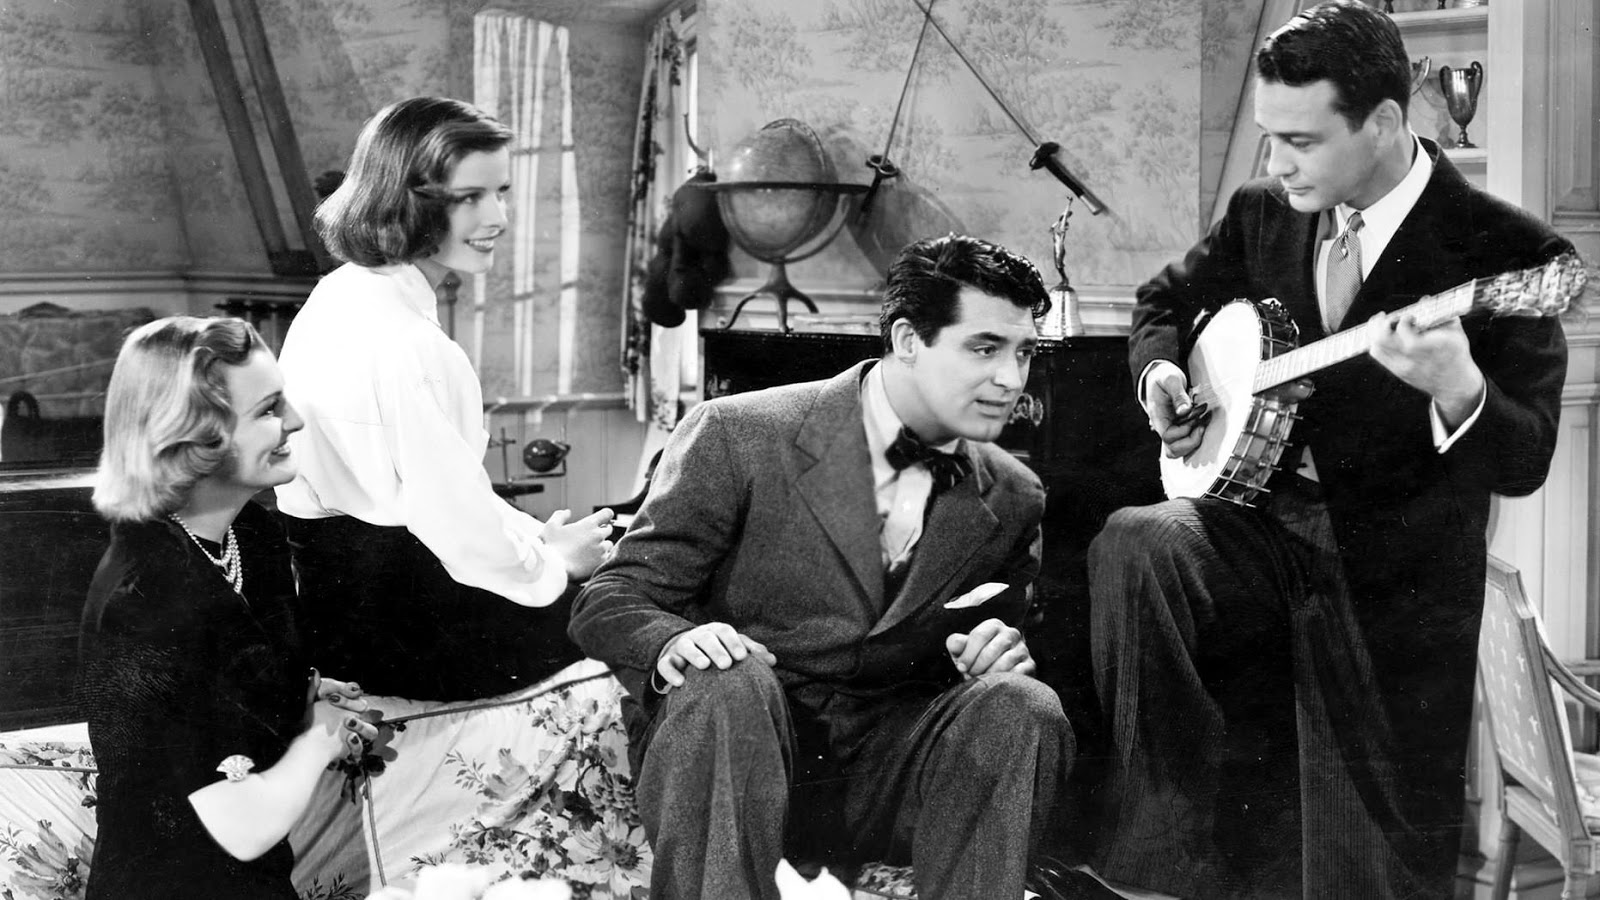 Still from the 1938 film Holiday, starring Cary Grant and Katherine Hepburn, which is not really about the holidays. Viewed, not read, during December 2020.